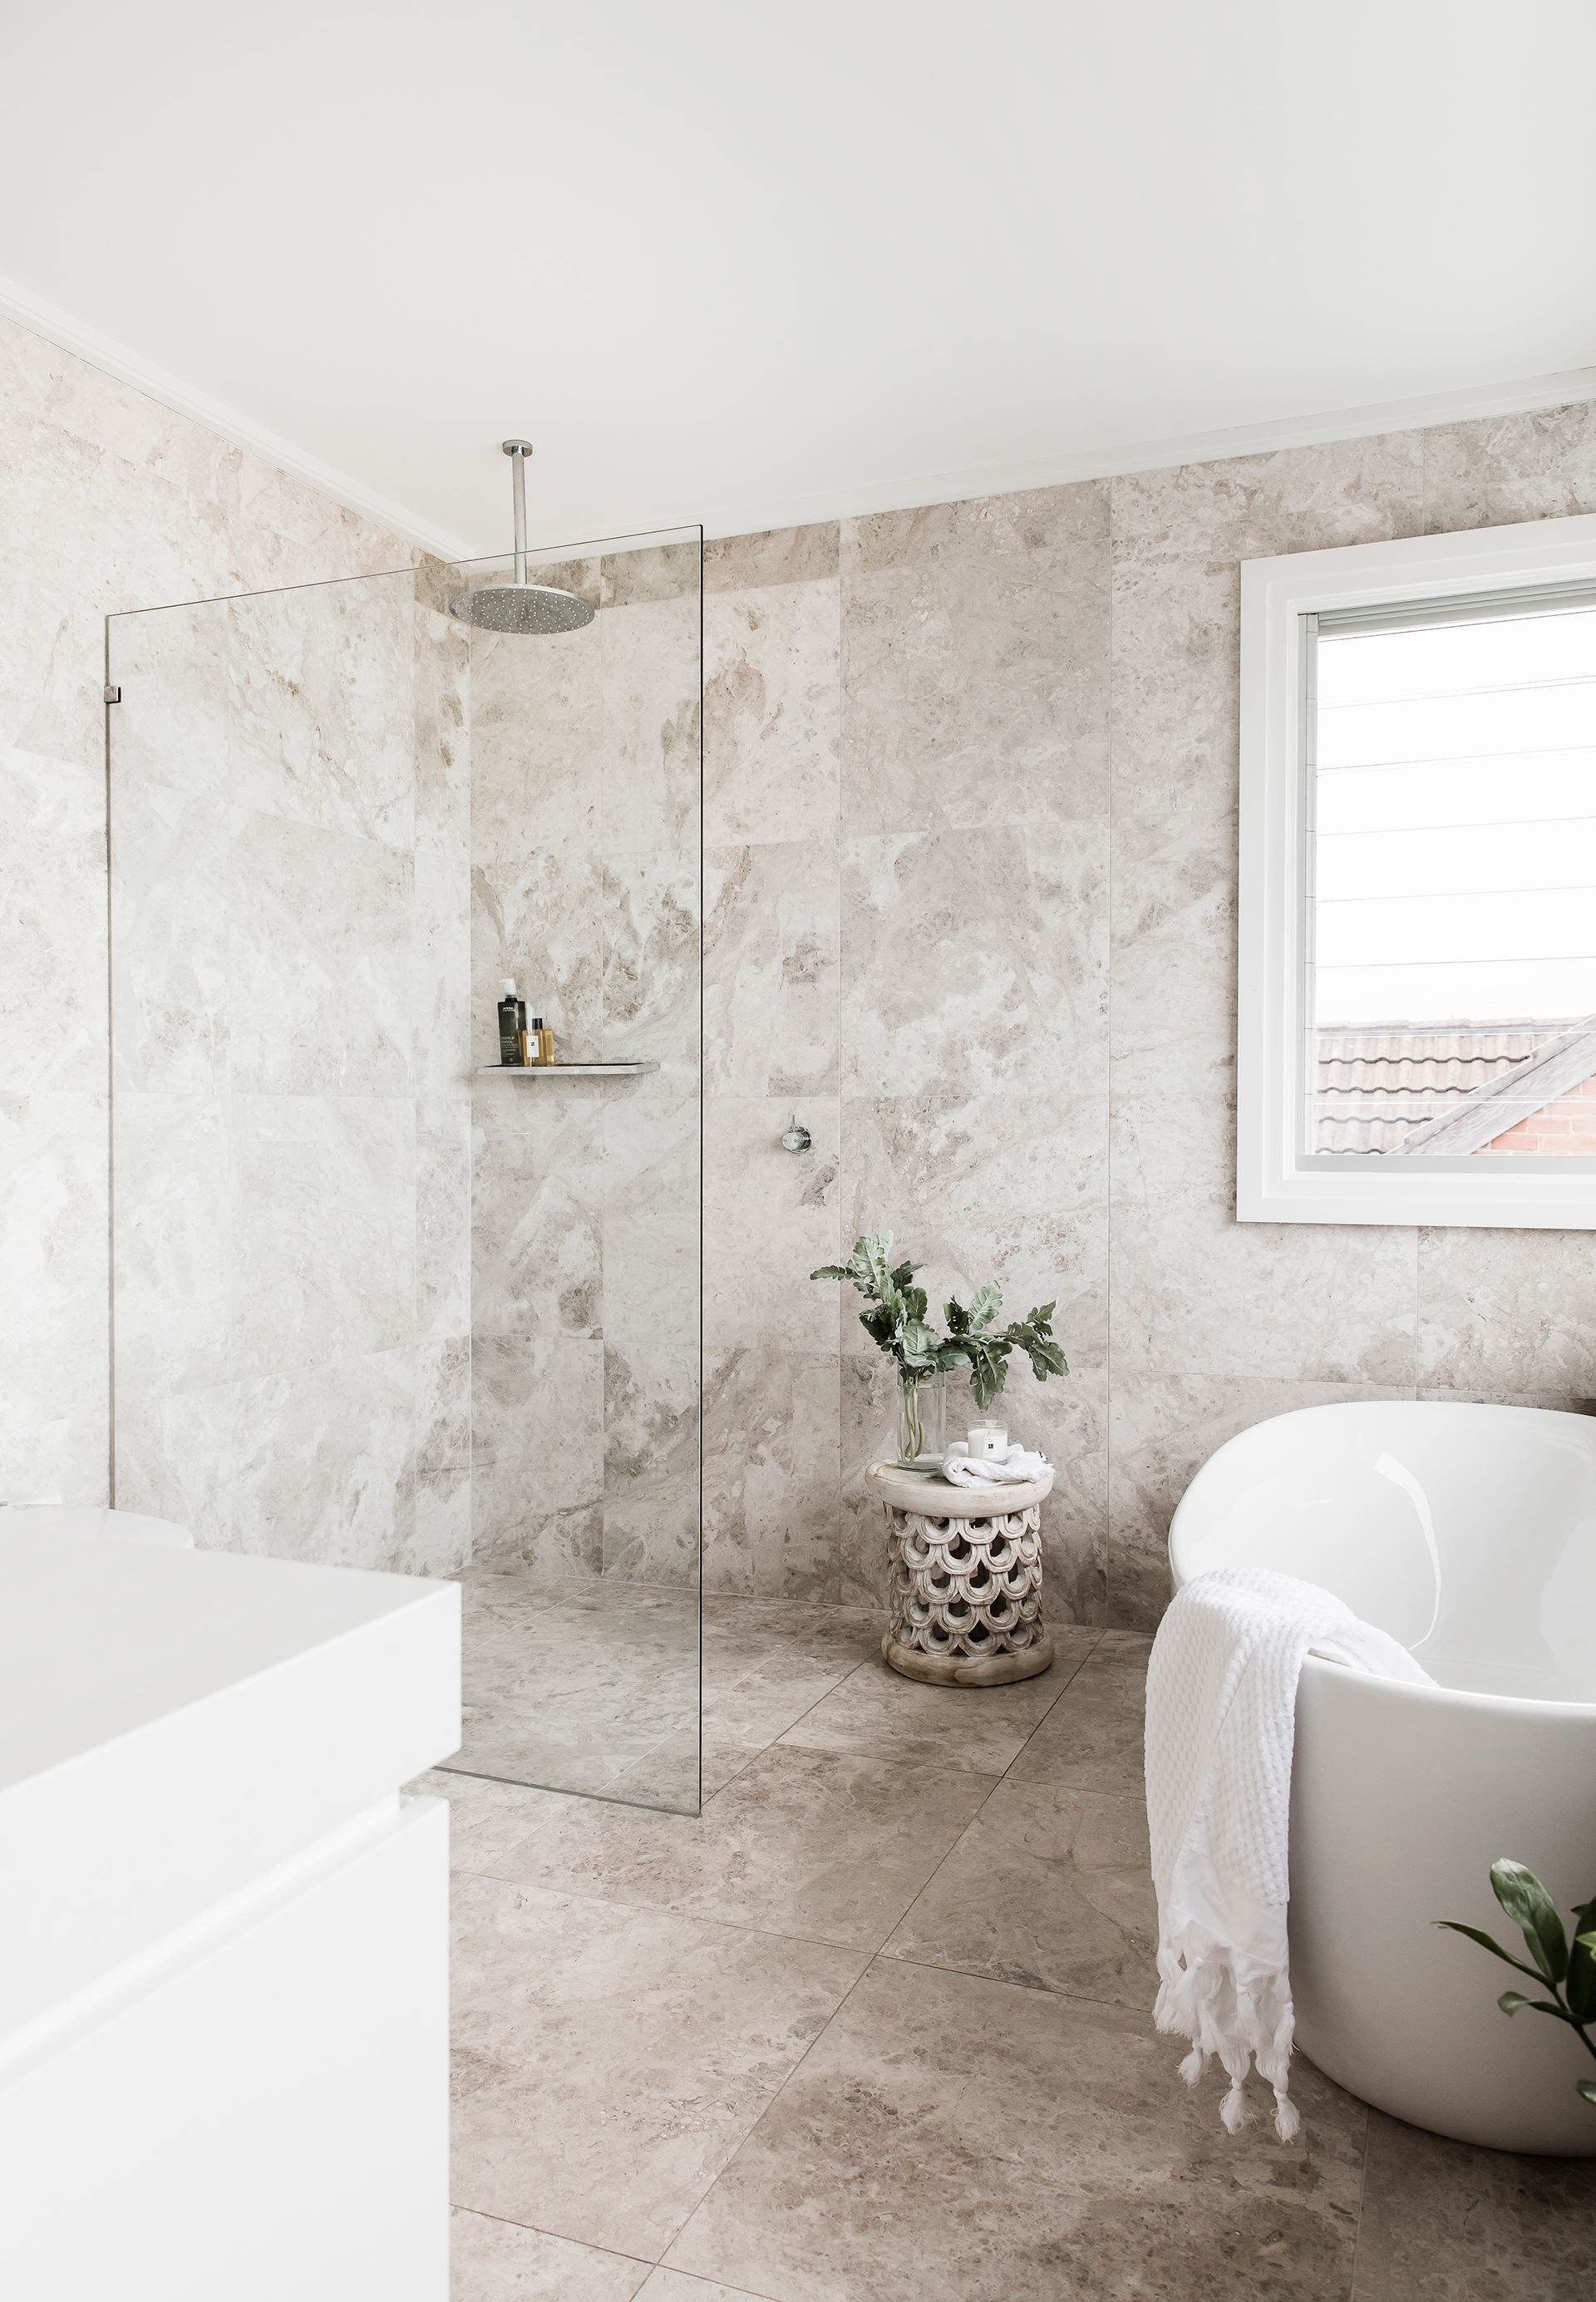 Bathroom from Hamptonsstyle 1950s seaside cottage in